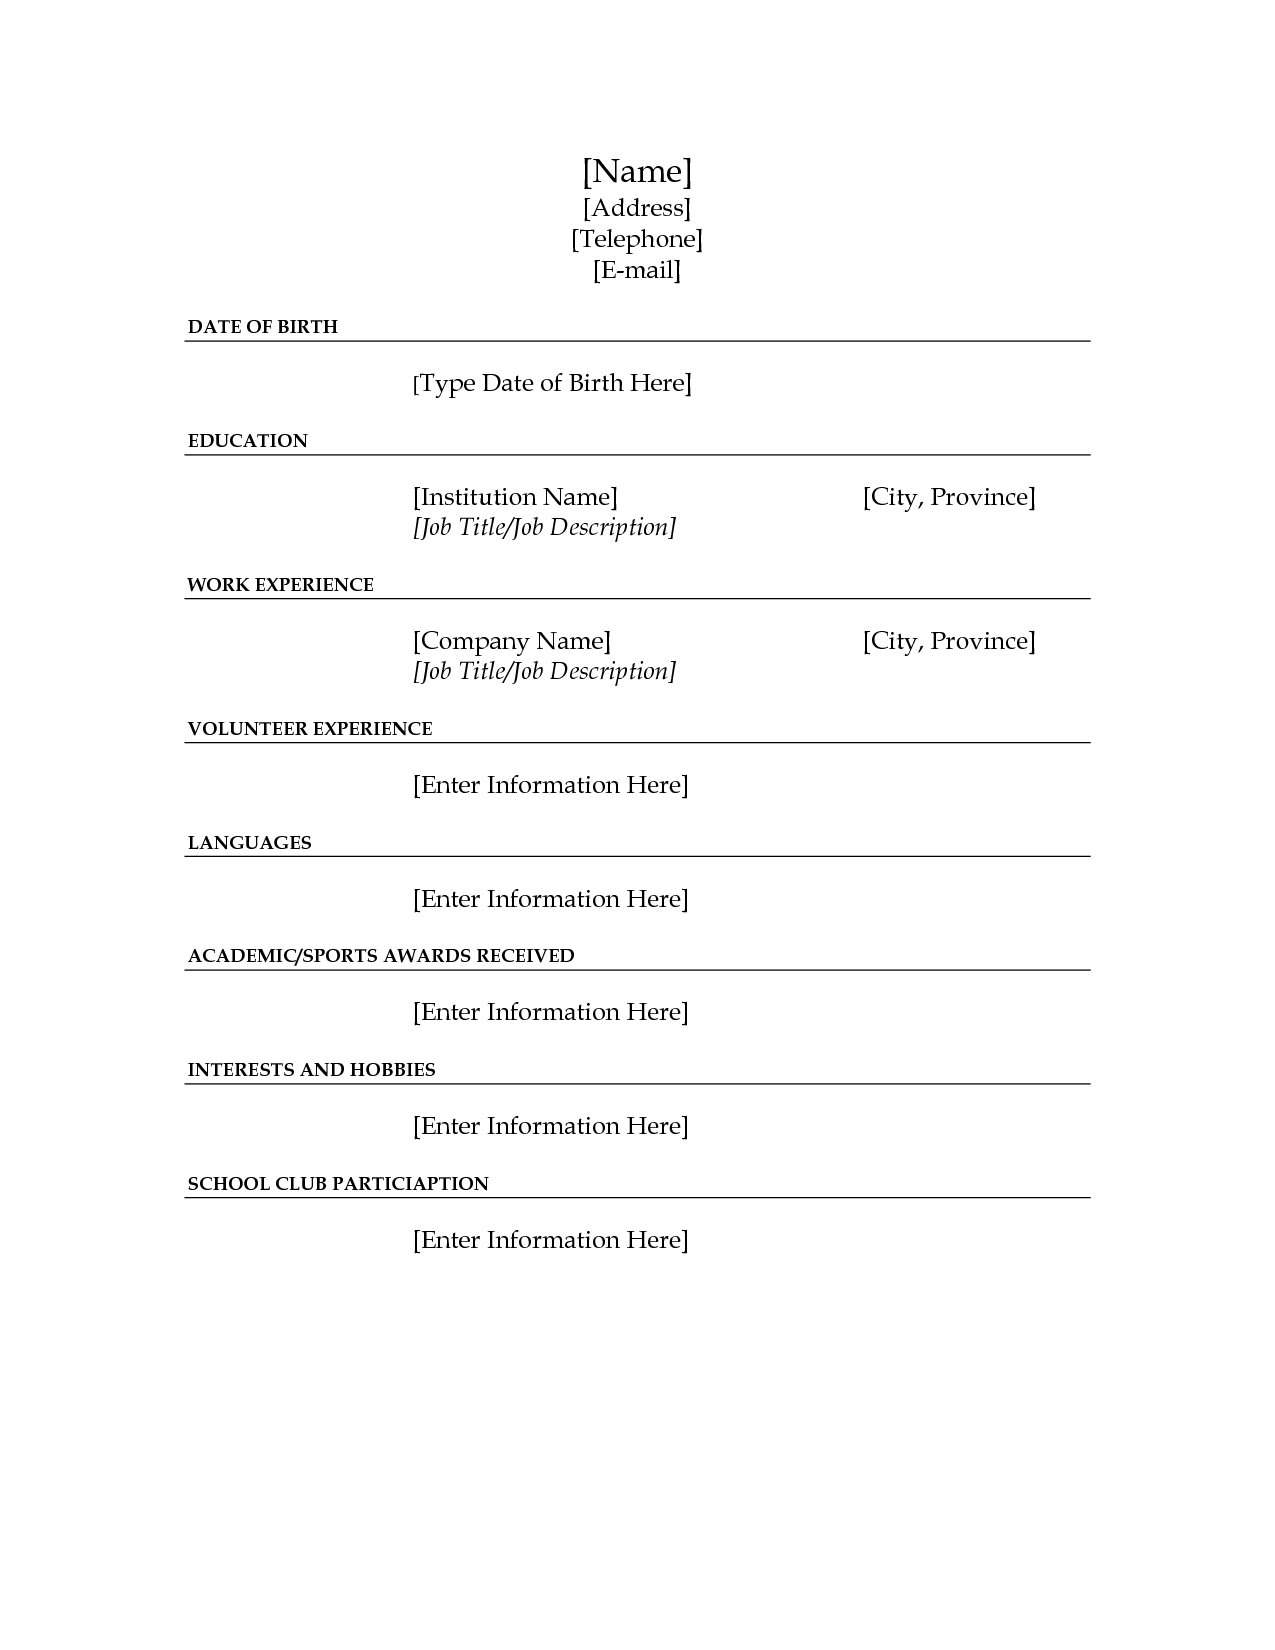 free online resume templates printable and builder for template maker app - Free Resume Examples For Jobs